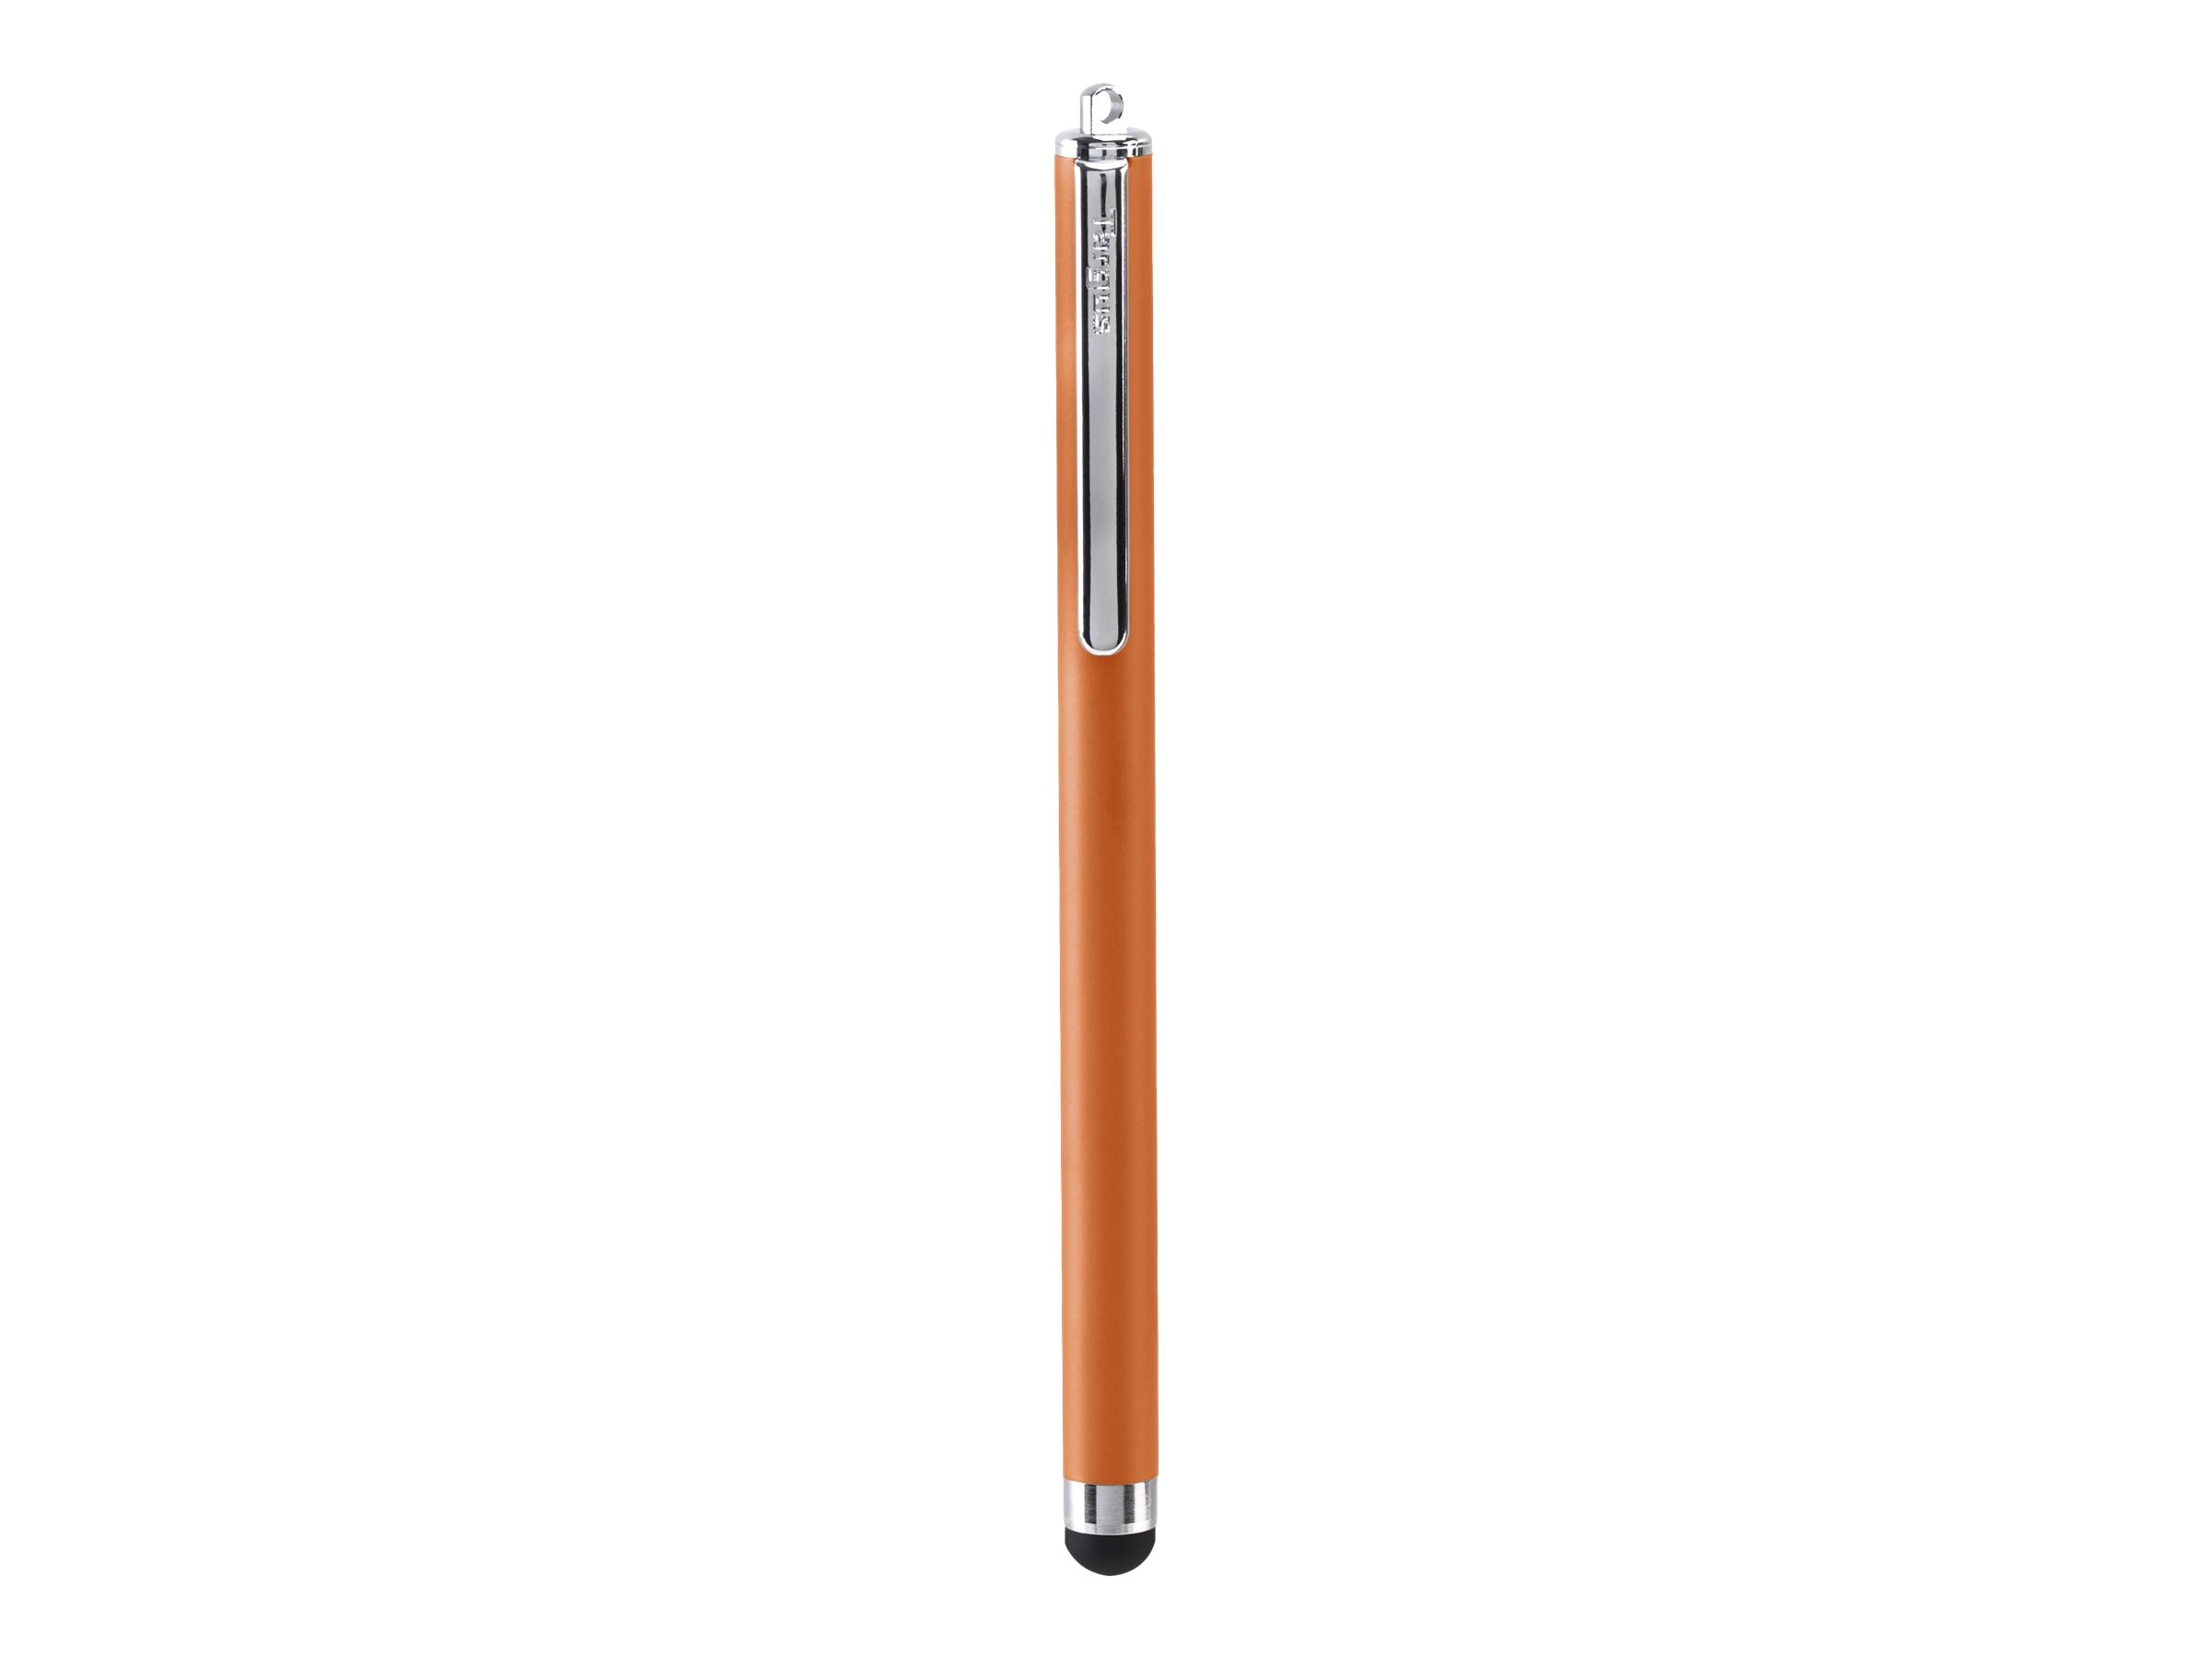 Targus Stylus for iPad 3, Orange Peel, AMM0117US